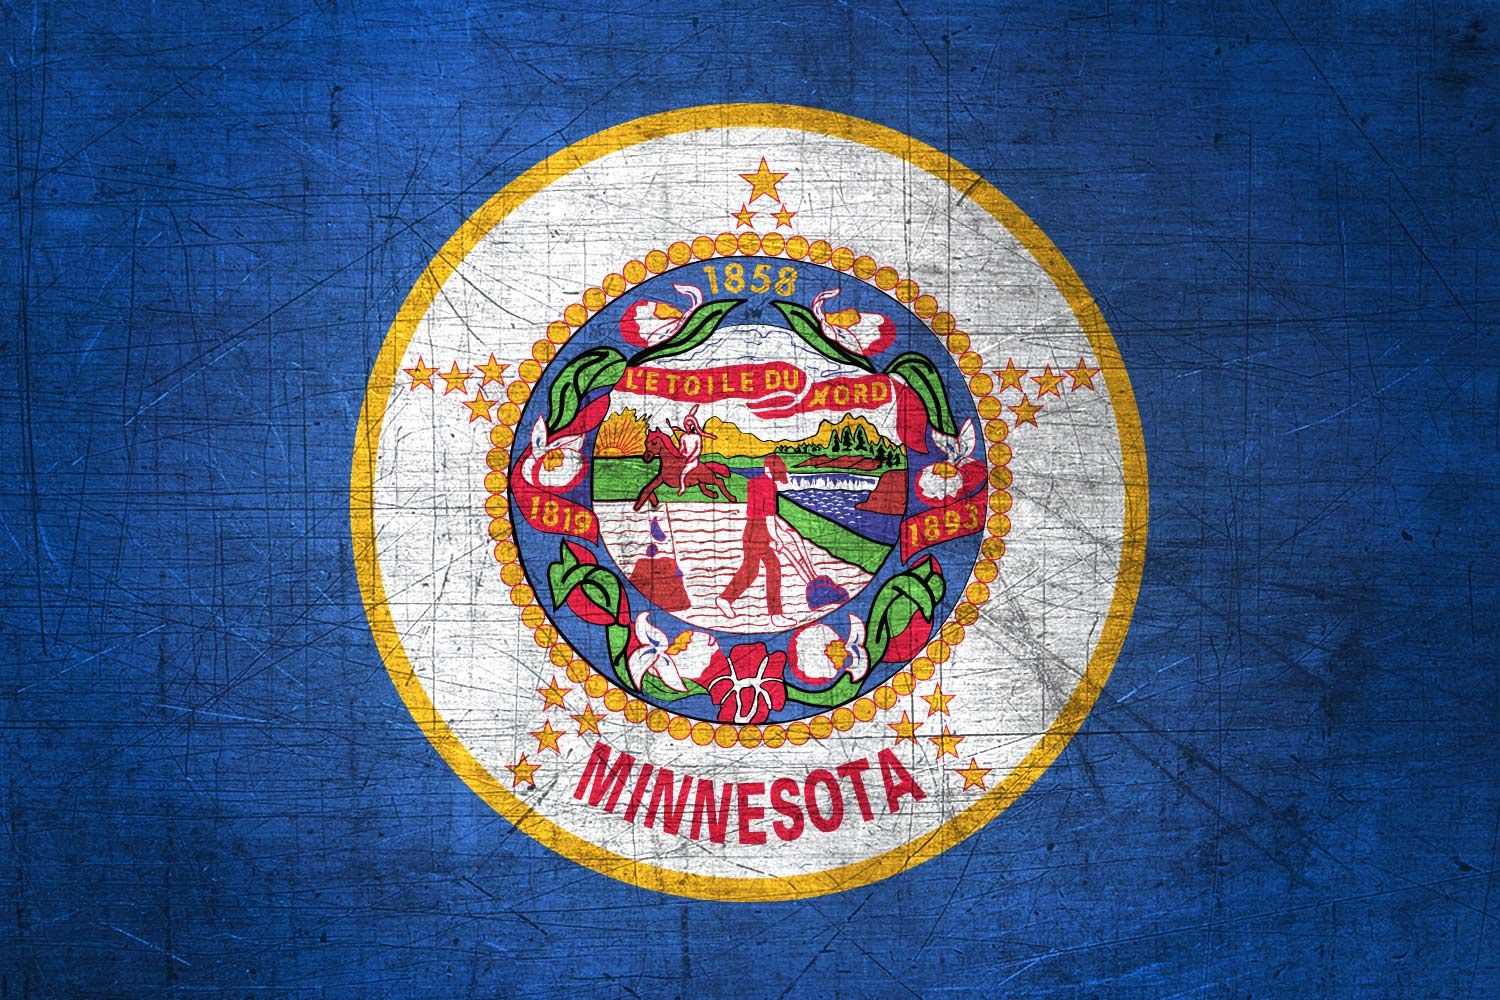 Minnesotan Flag Metal (Flag of Minnesota) - Download it for free